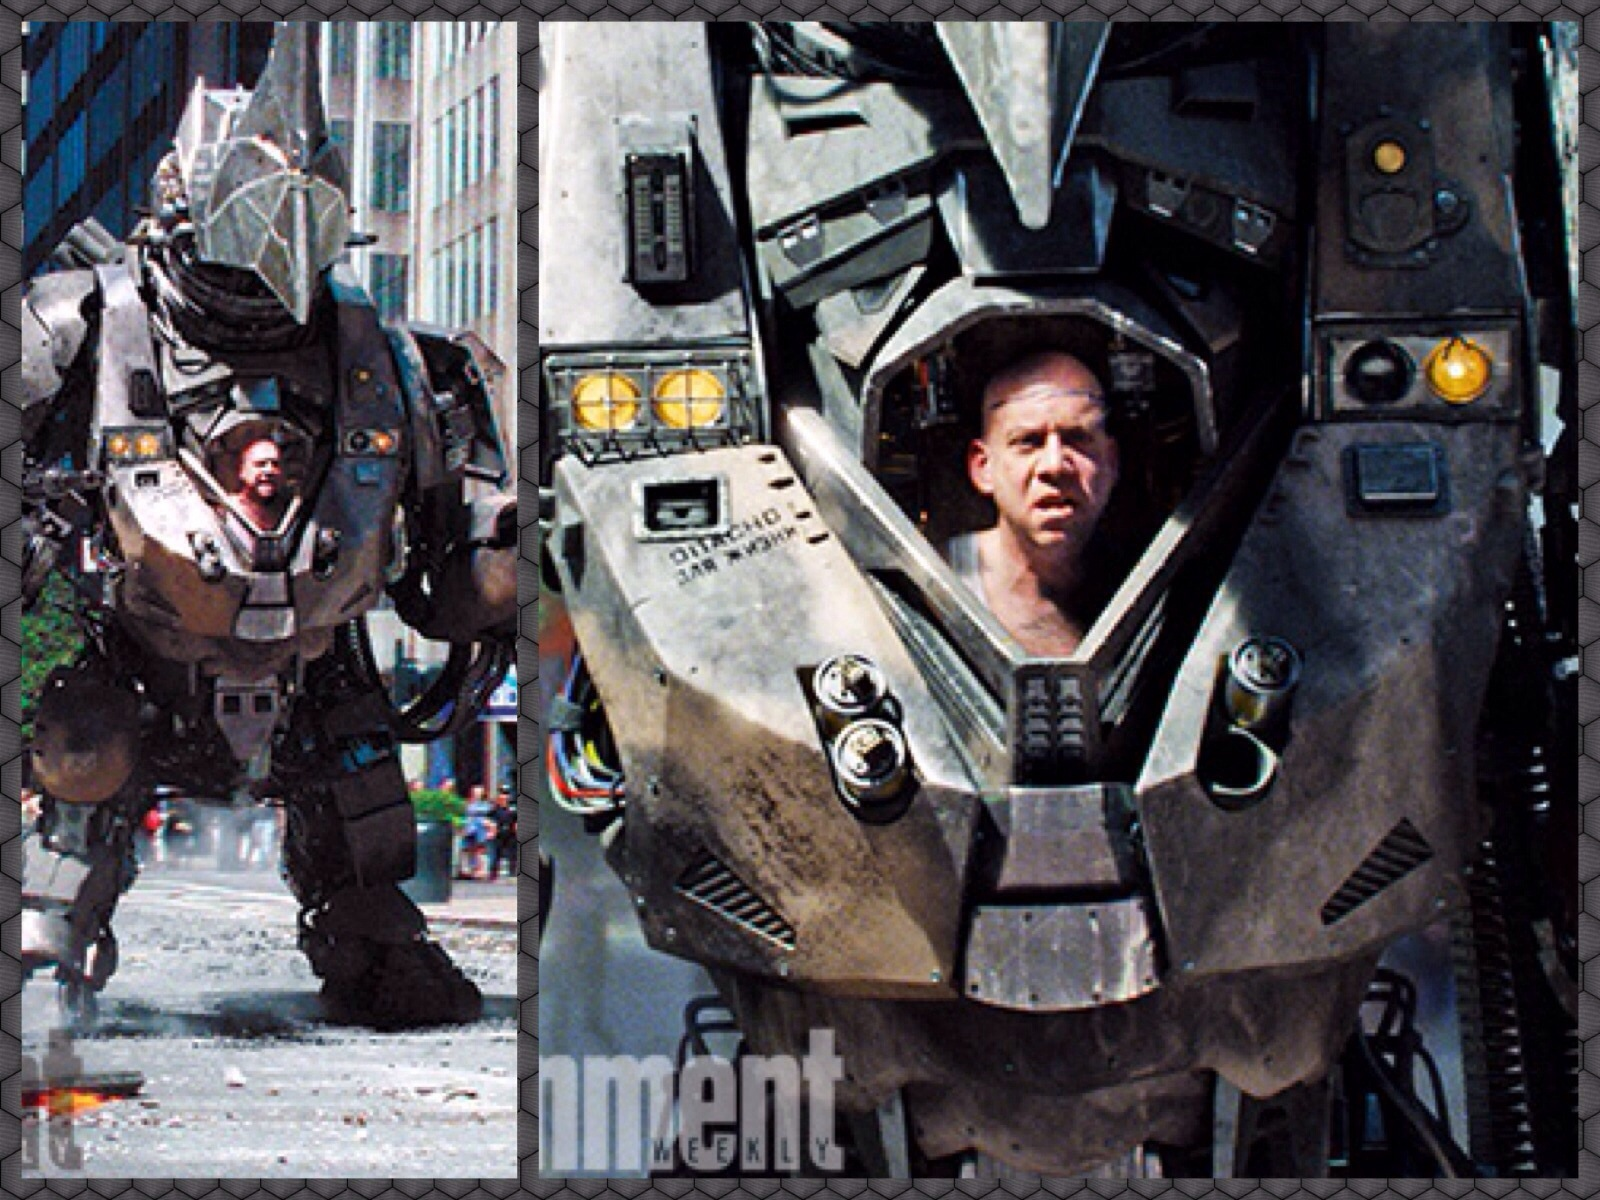 Check out our first proper look at Paul Giamatti's Rhino ...